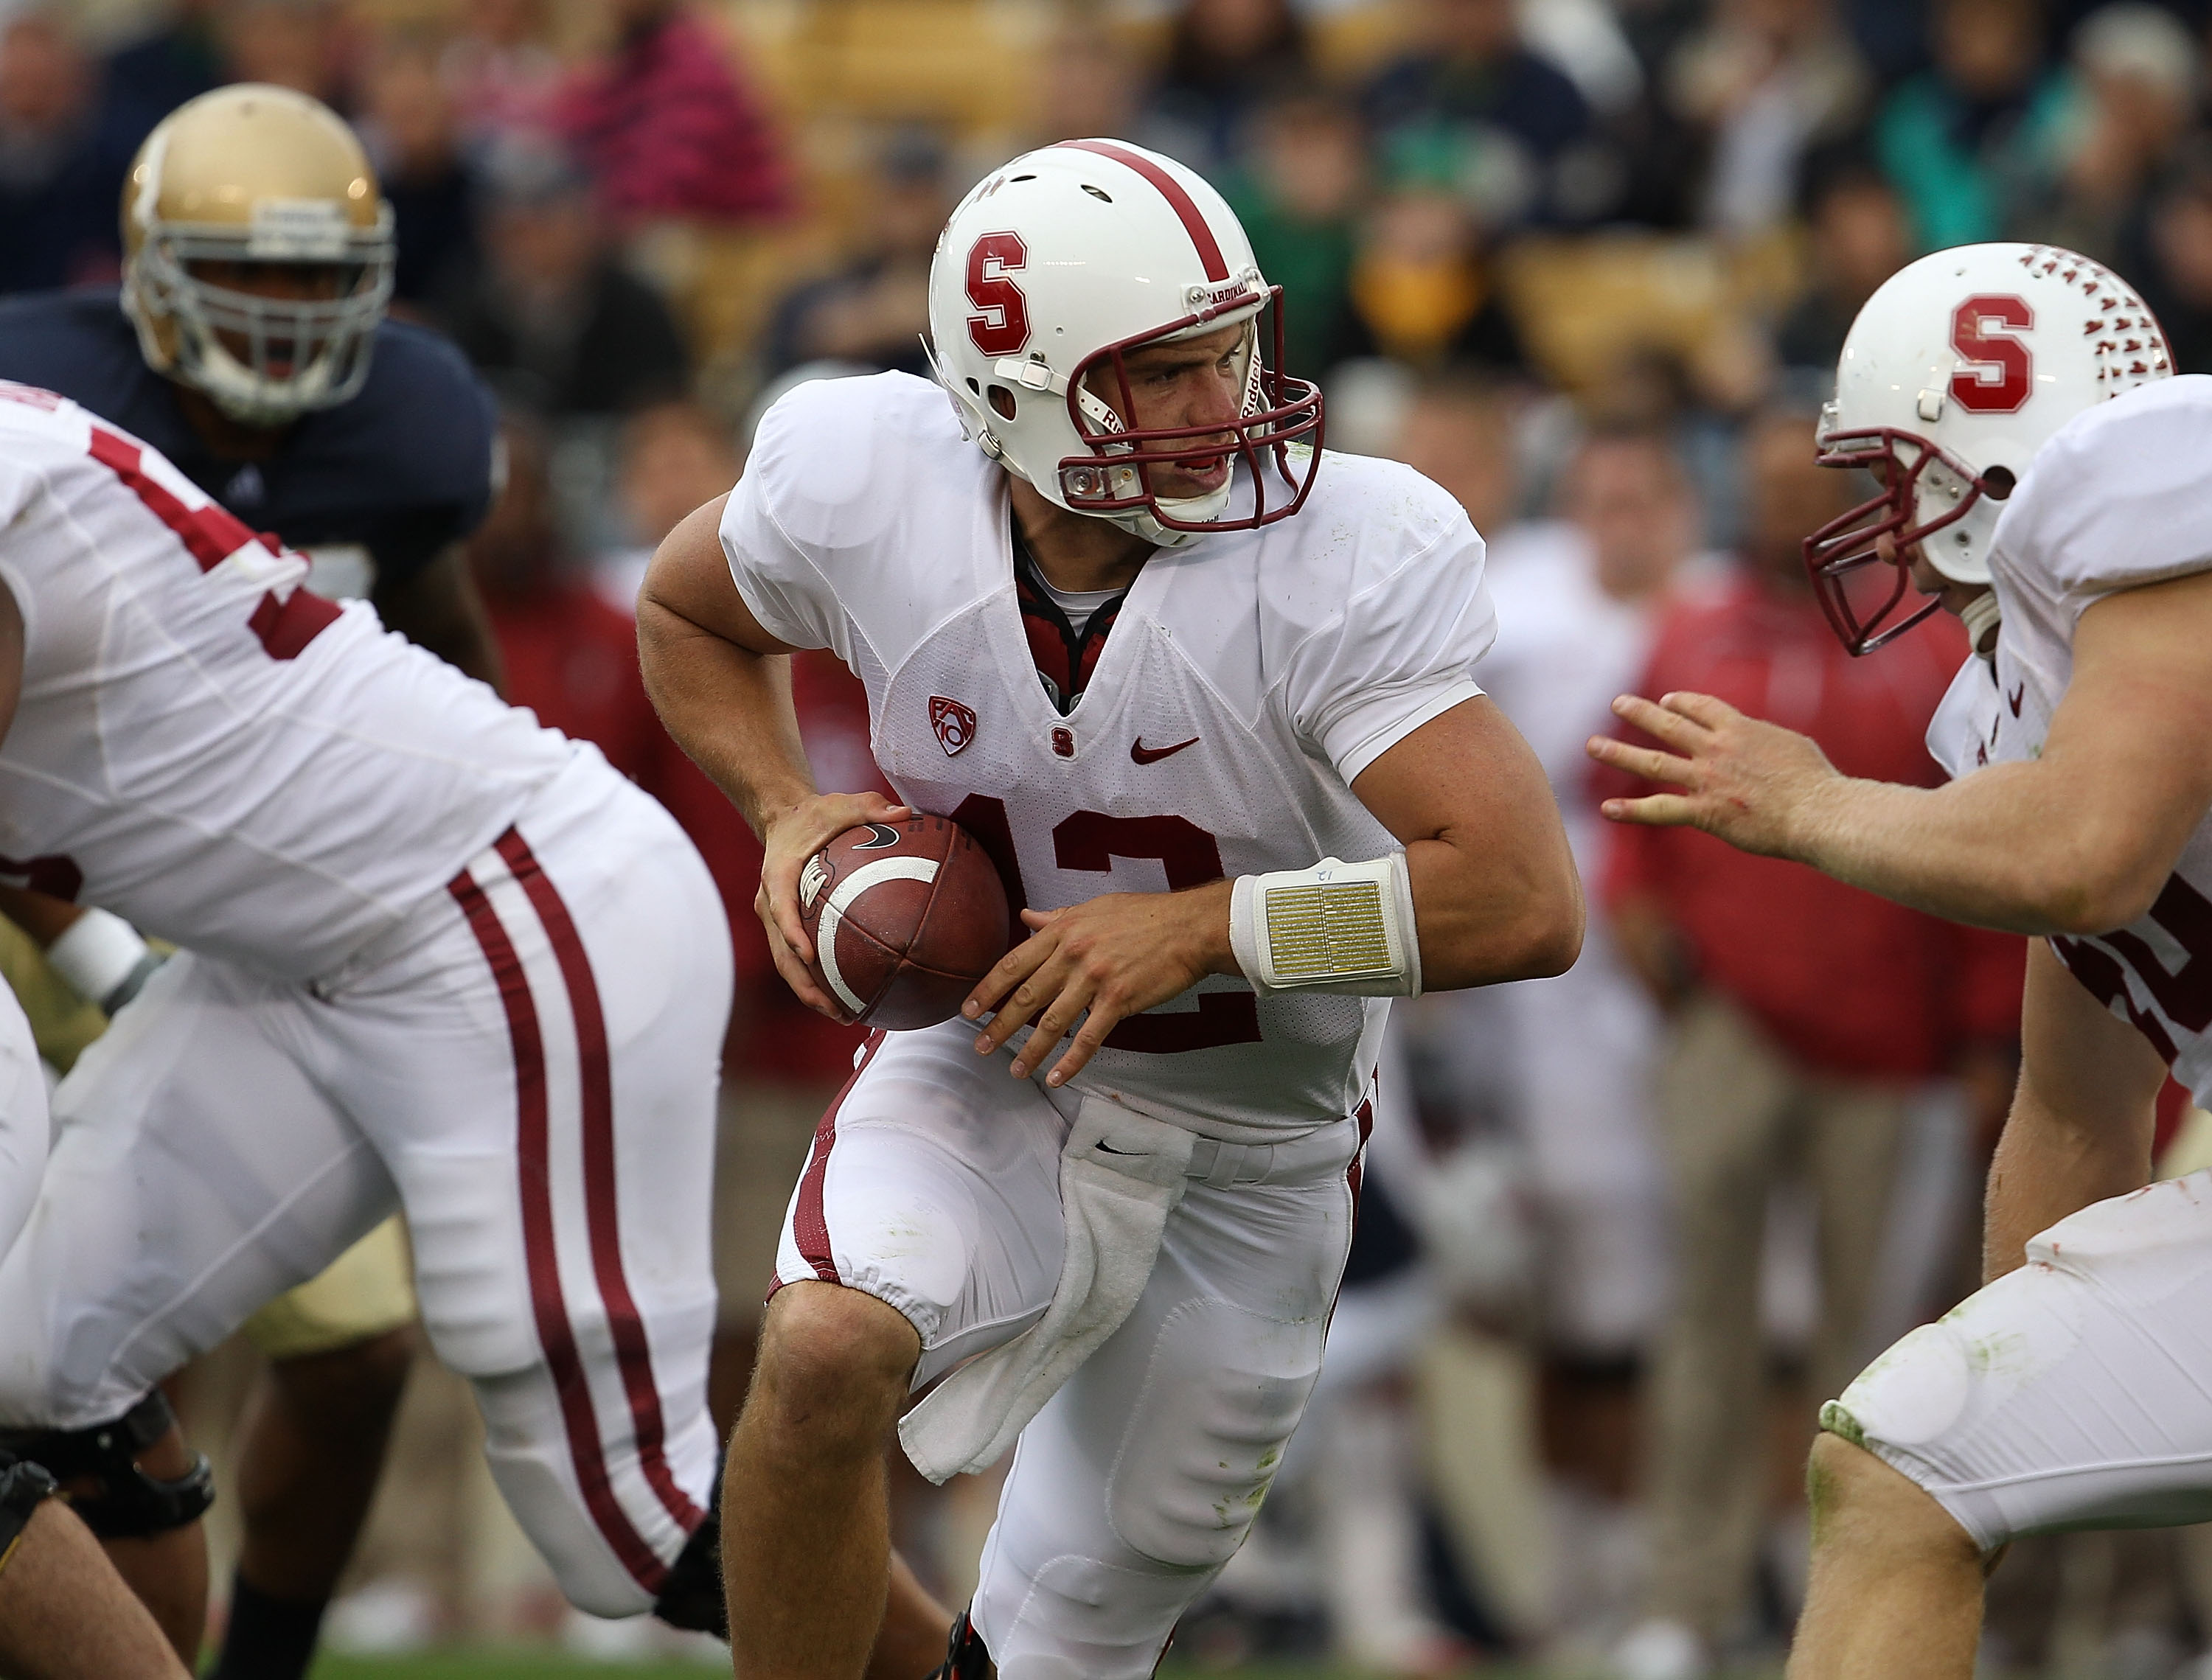 SOUTH BEND, IN - SEPTEMBER 25: Andrew Luck #12 of the Stanford Cardinal turns to hand-off against the Notre Dame Fighting Irish at Notre Dame Stadium on September 25, 2010 in South Bend, Indiana. Stanford defeated Notre Dame 37-14. (Photo by Jonathan Dani